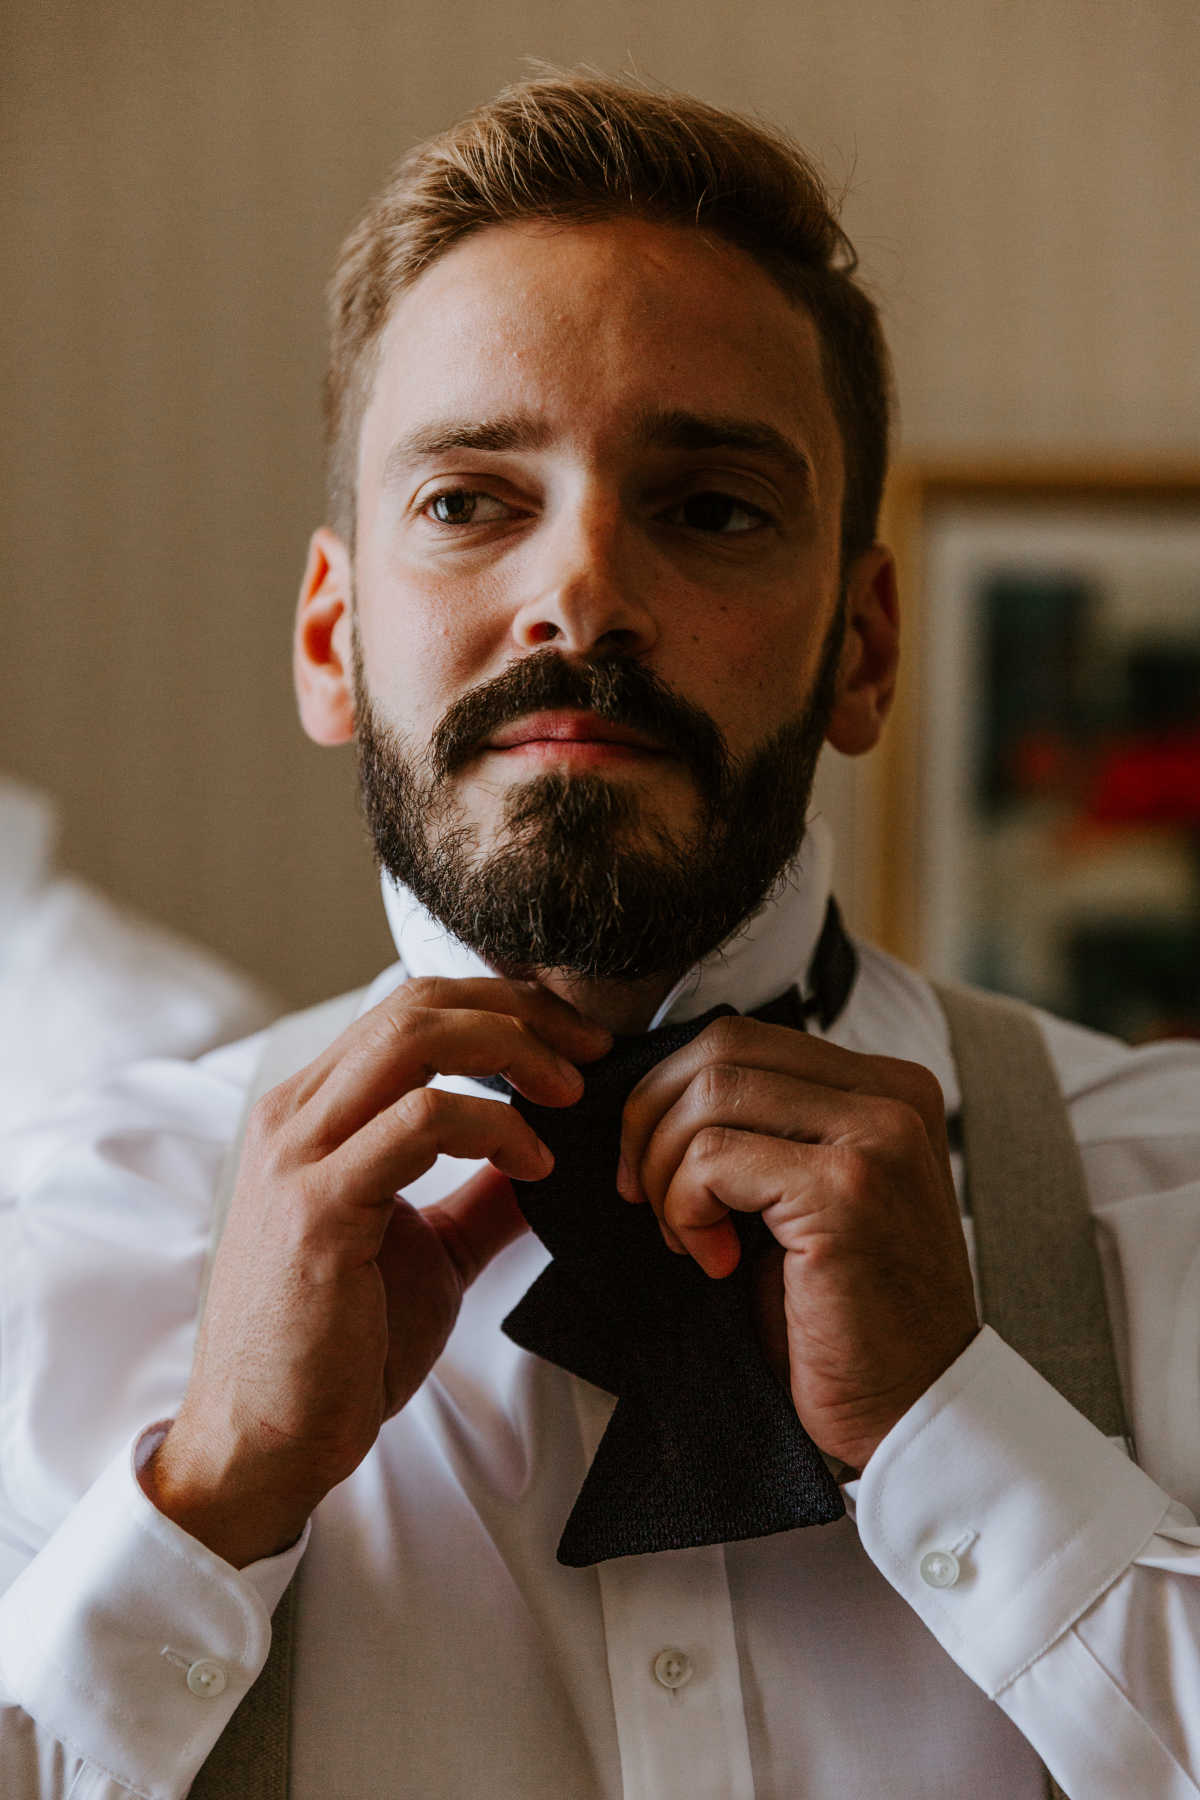 Close-up of the groom adjusting his bow tie